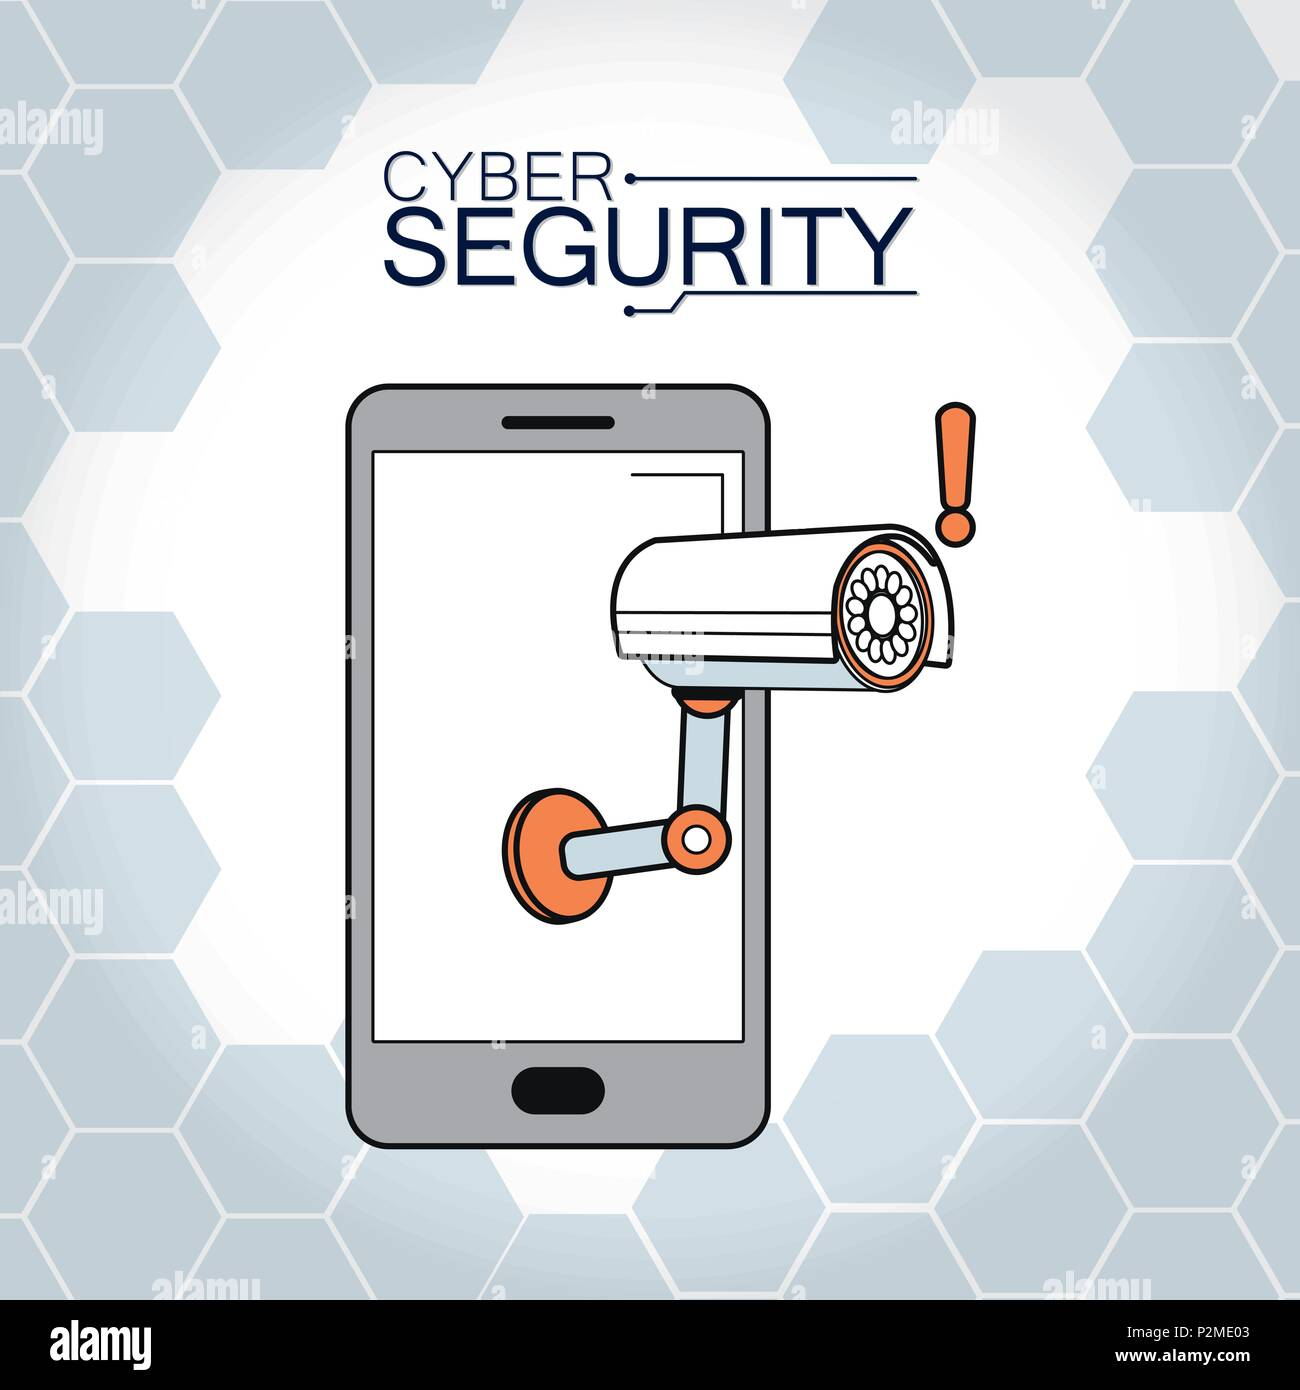 Cyber security concept - Stock Image